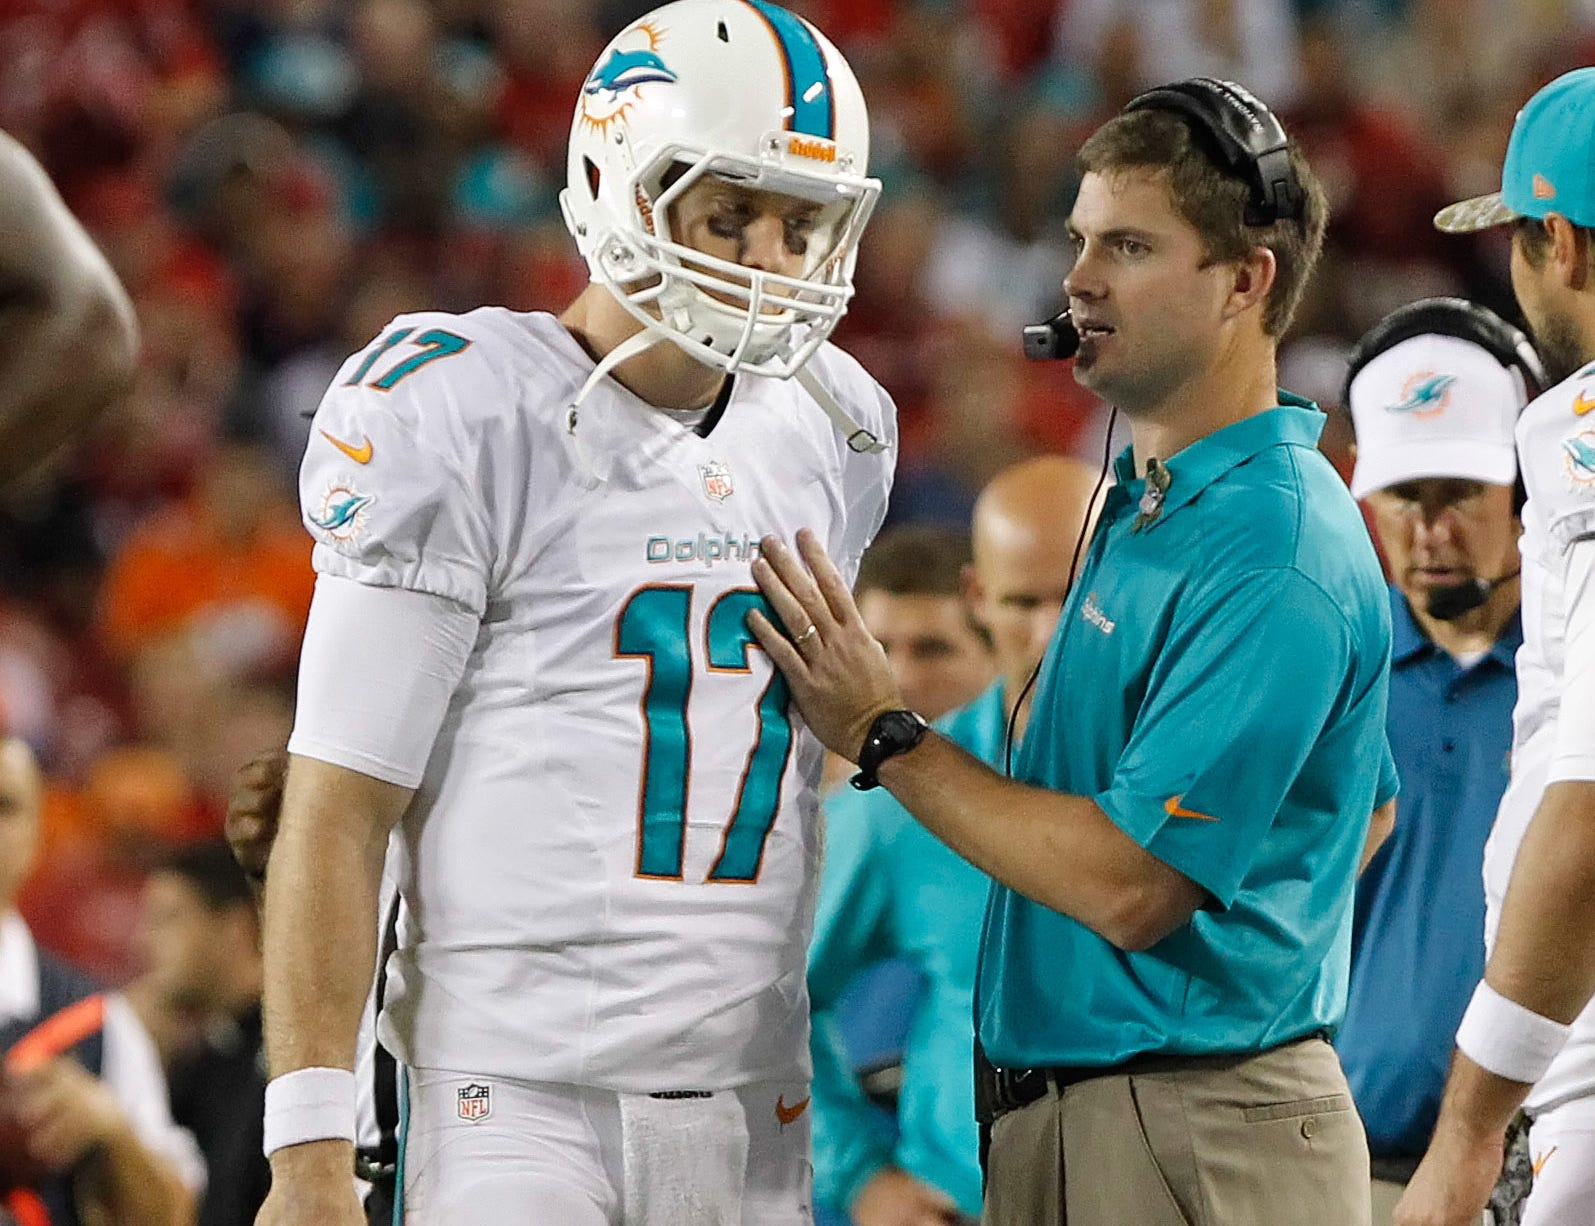 Taylor has been praised for his work in Miami in helping to develop Ryan Tannehill as an NFL quarterback.